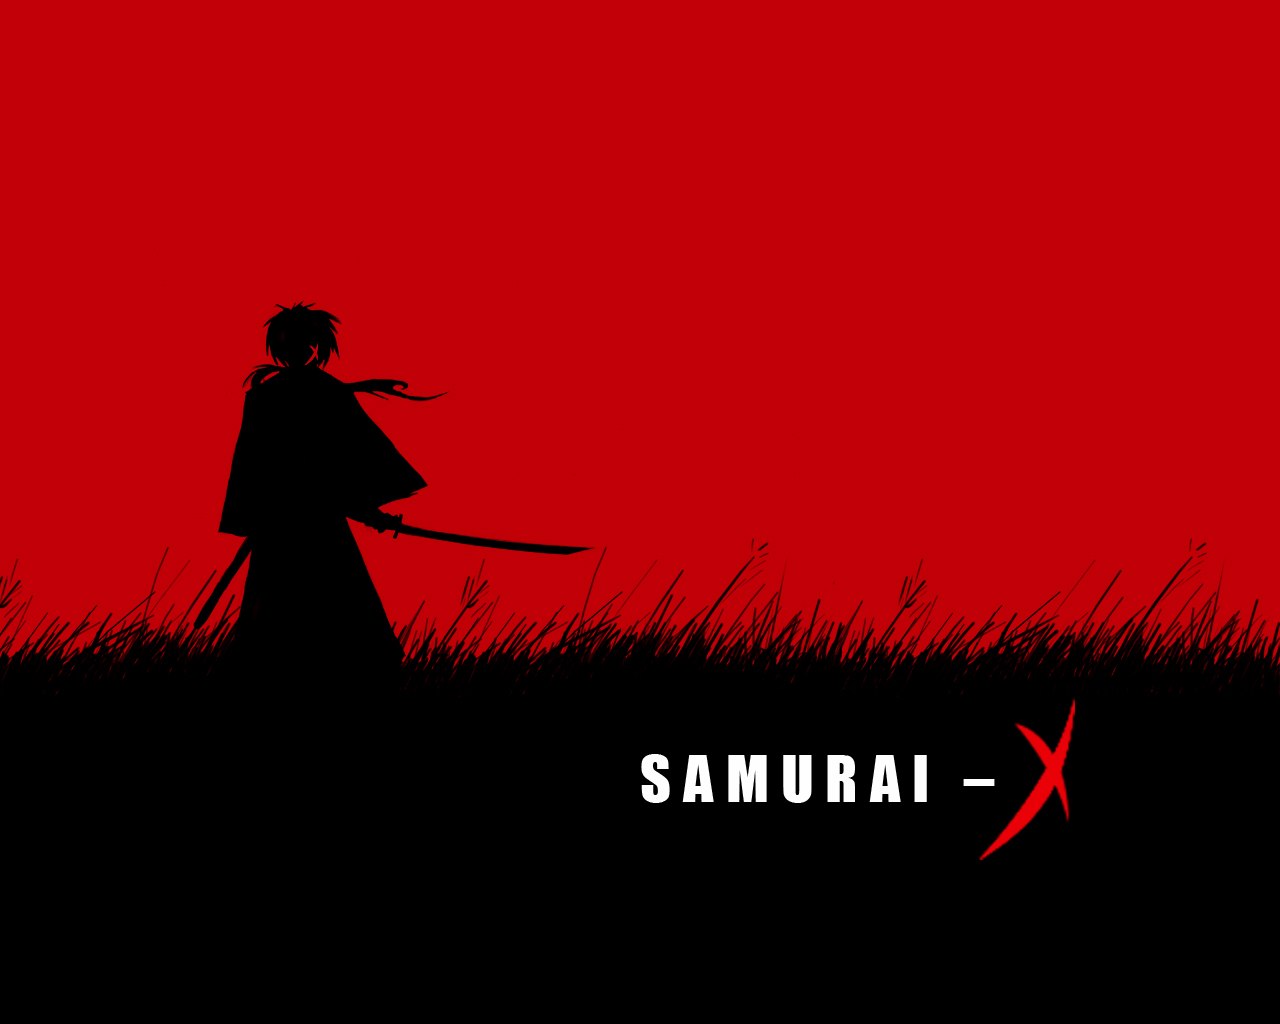 Samurai___X____wallpaper_by_fall0ut4d2.j